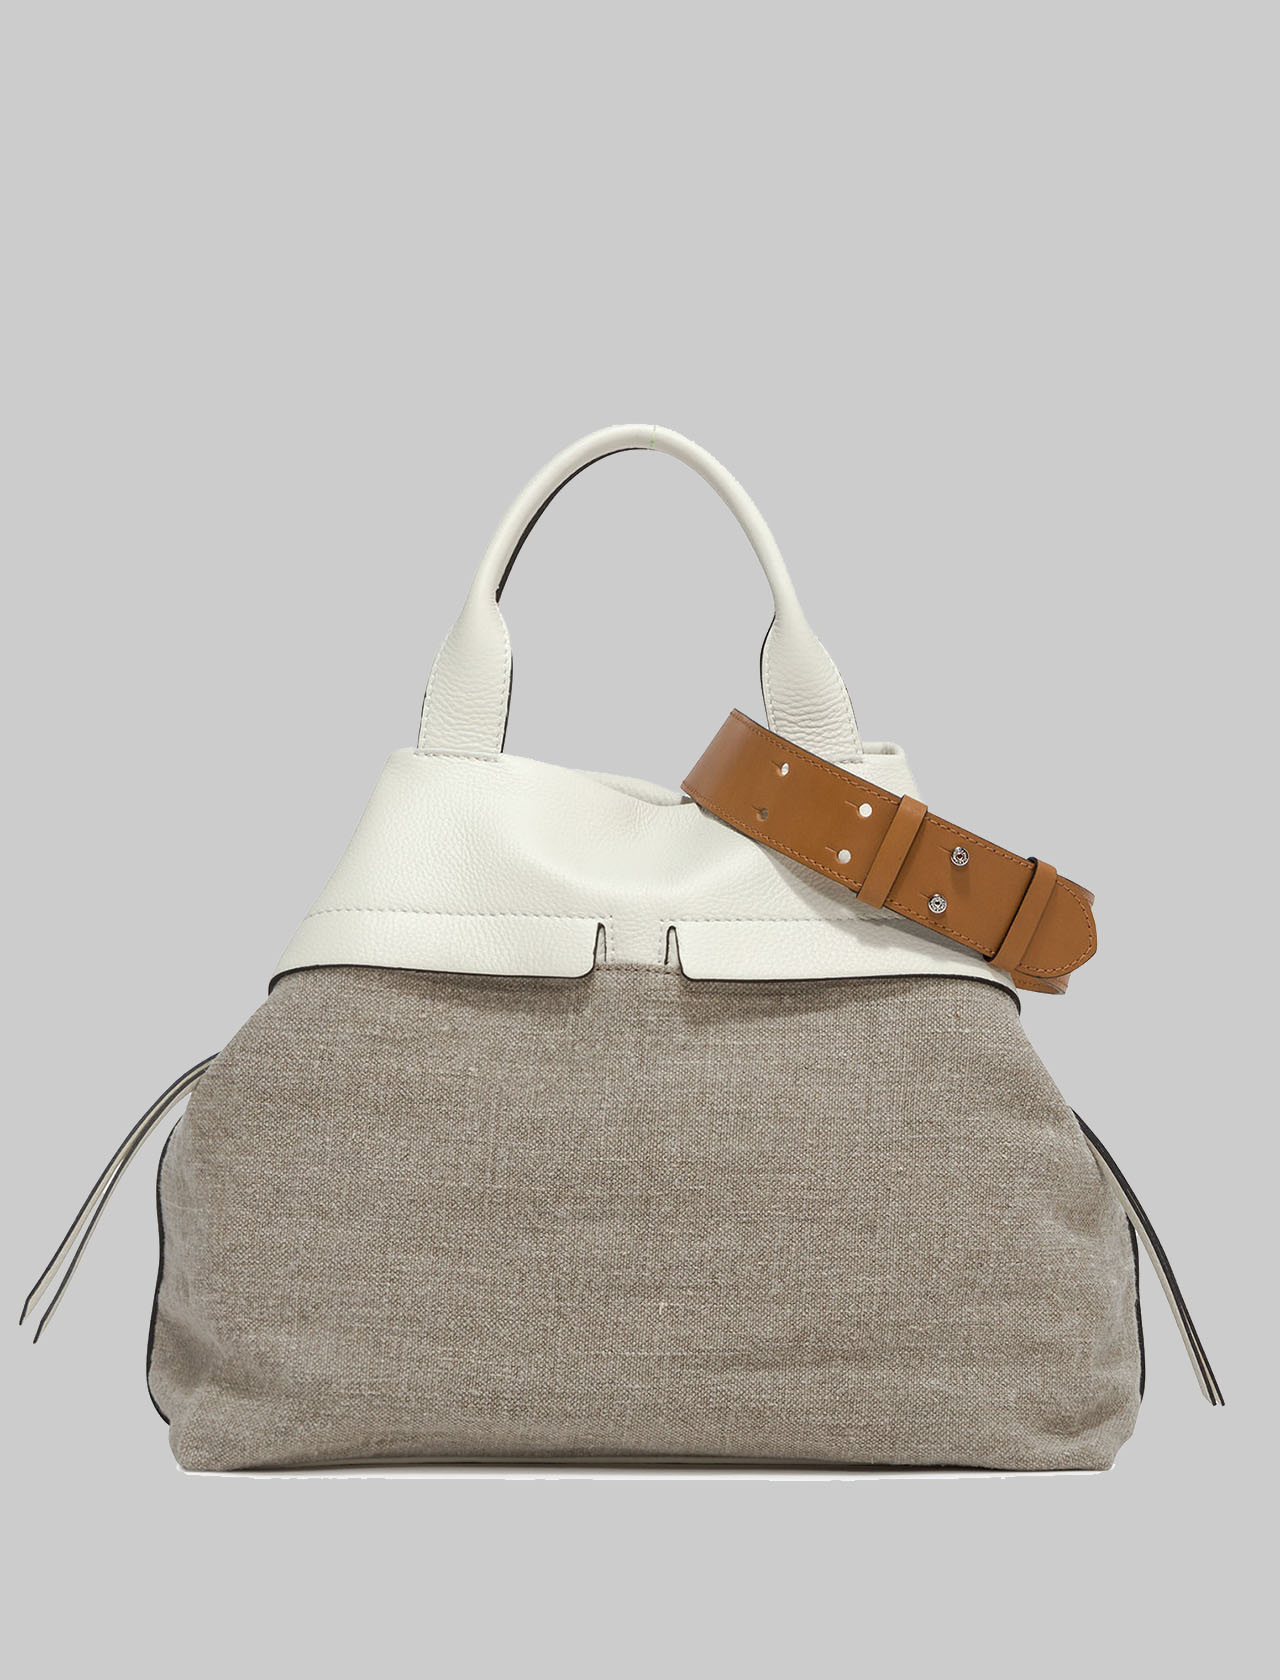 Duna Woman Shoulder Bag Natural Fabric And Cream Leather With Double Handle And Double Shoulder Strap Gianni Chiarini | Bags and backpacks | BS823211749